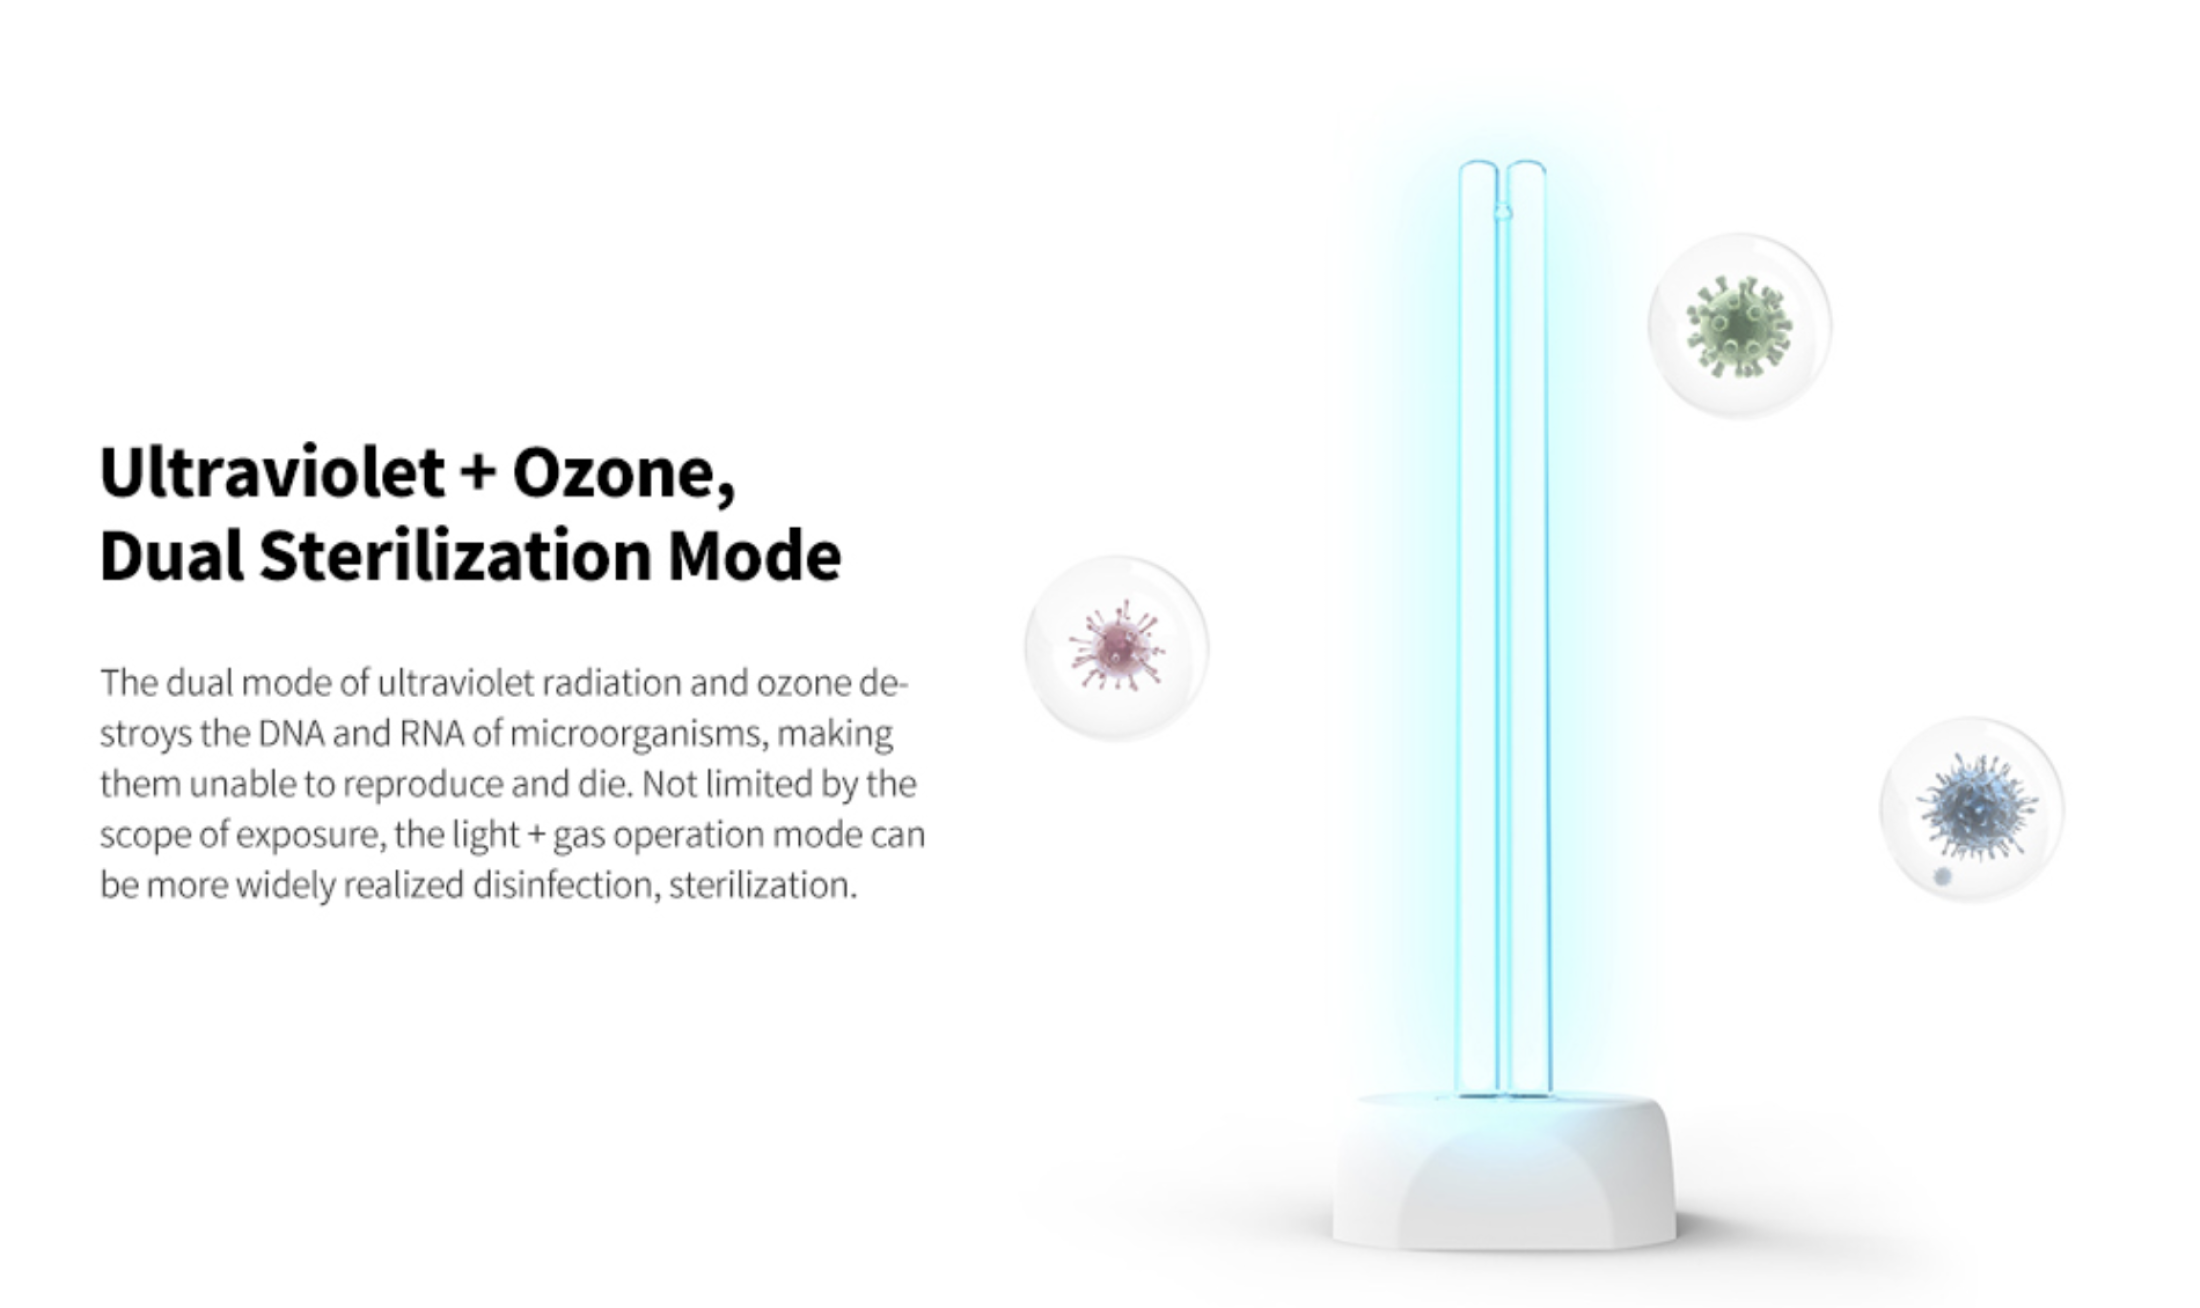 Xiaomi huayi mijia Household Disinfection Germicidal Lamp UV Ozone Sterilization Light 38W 360